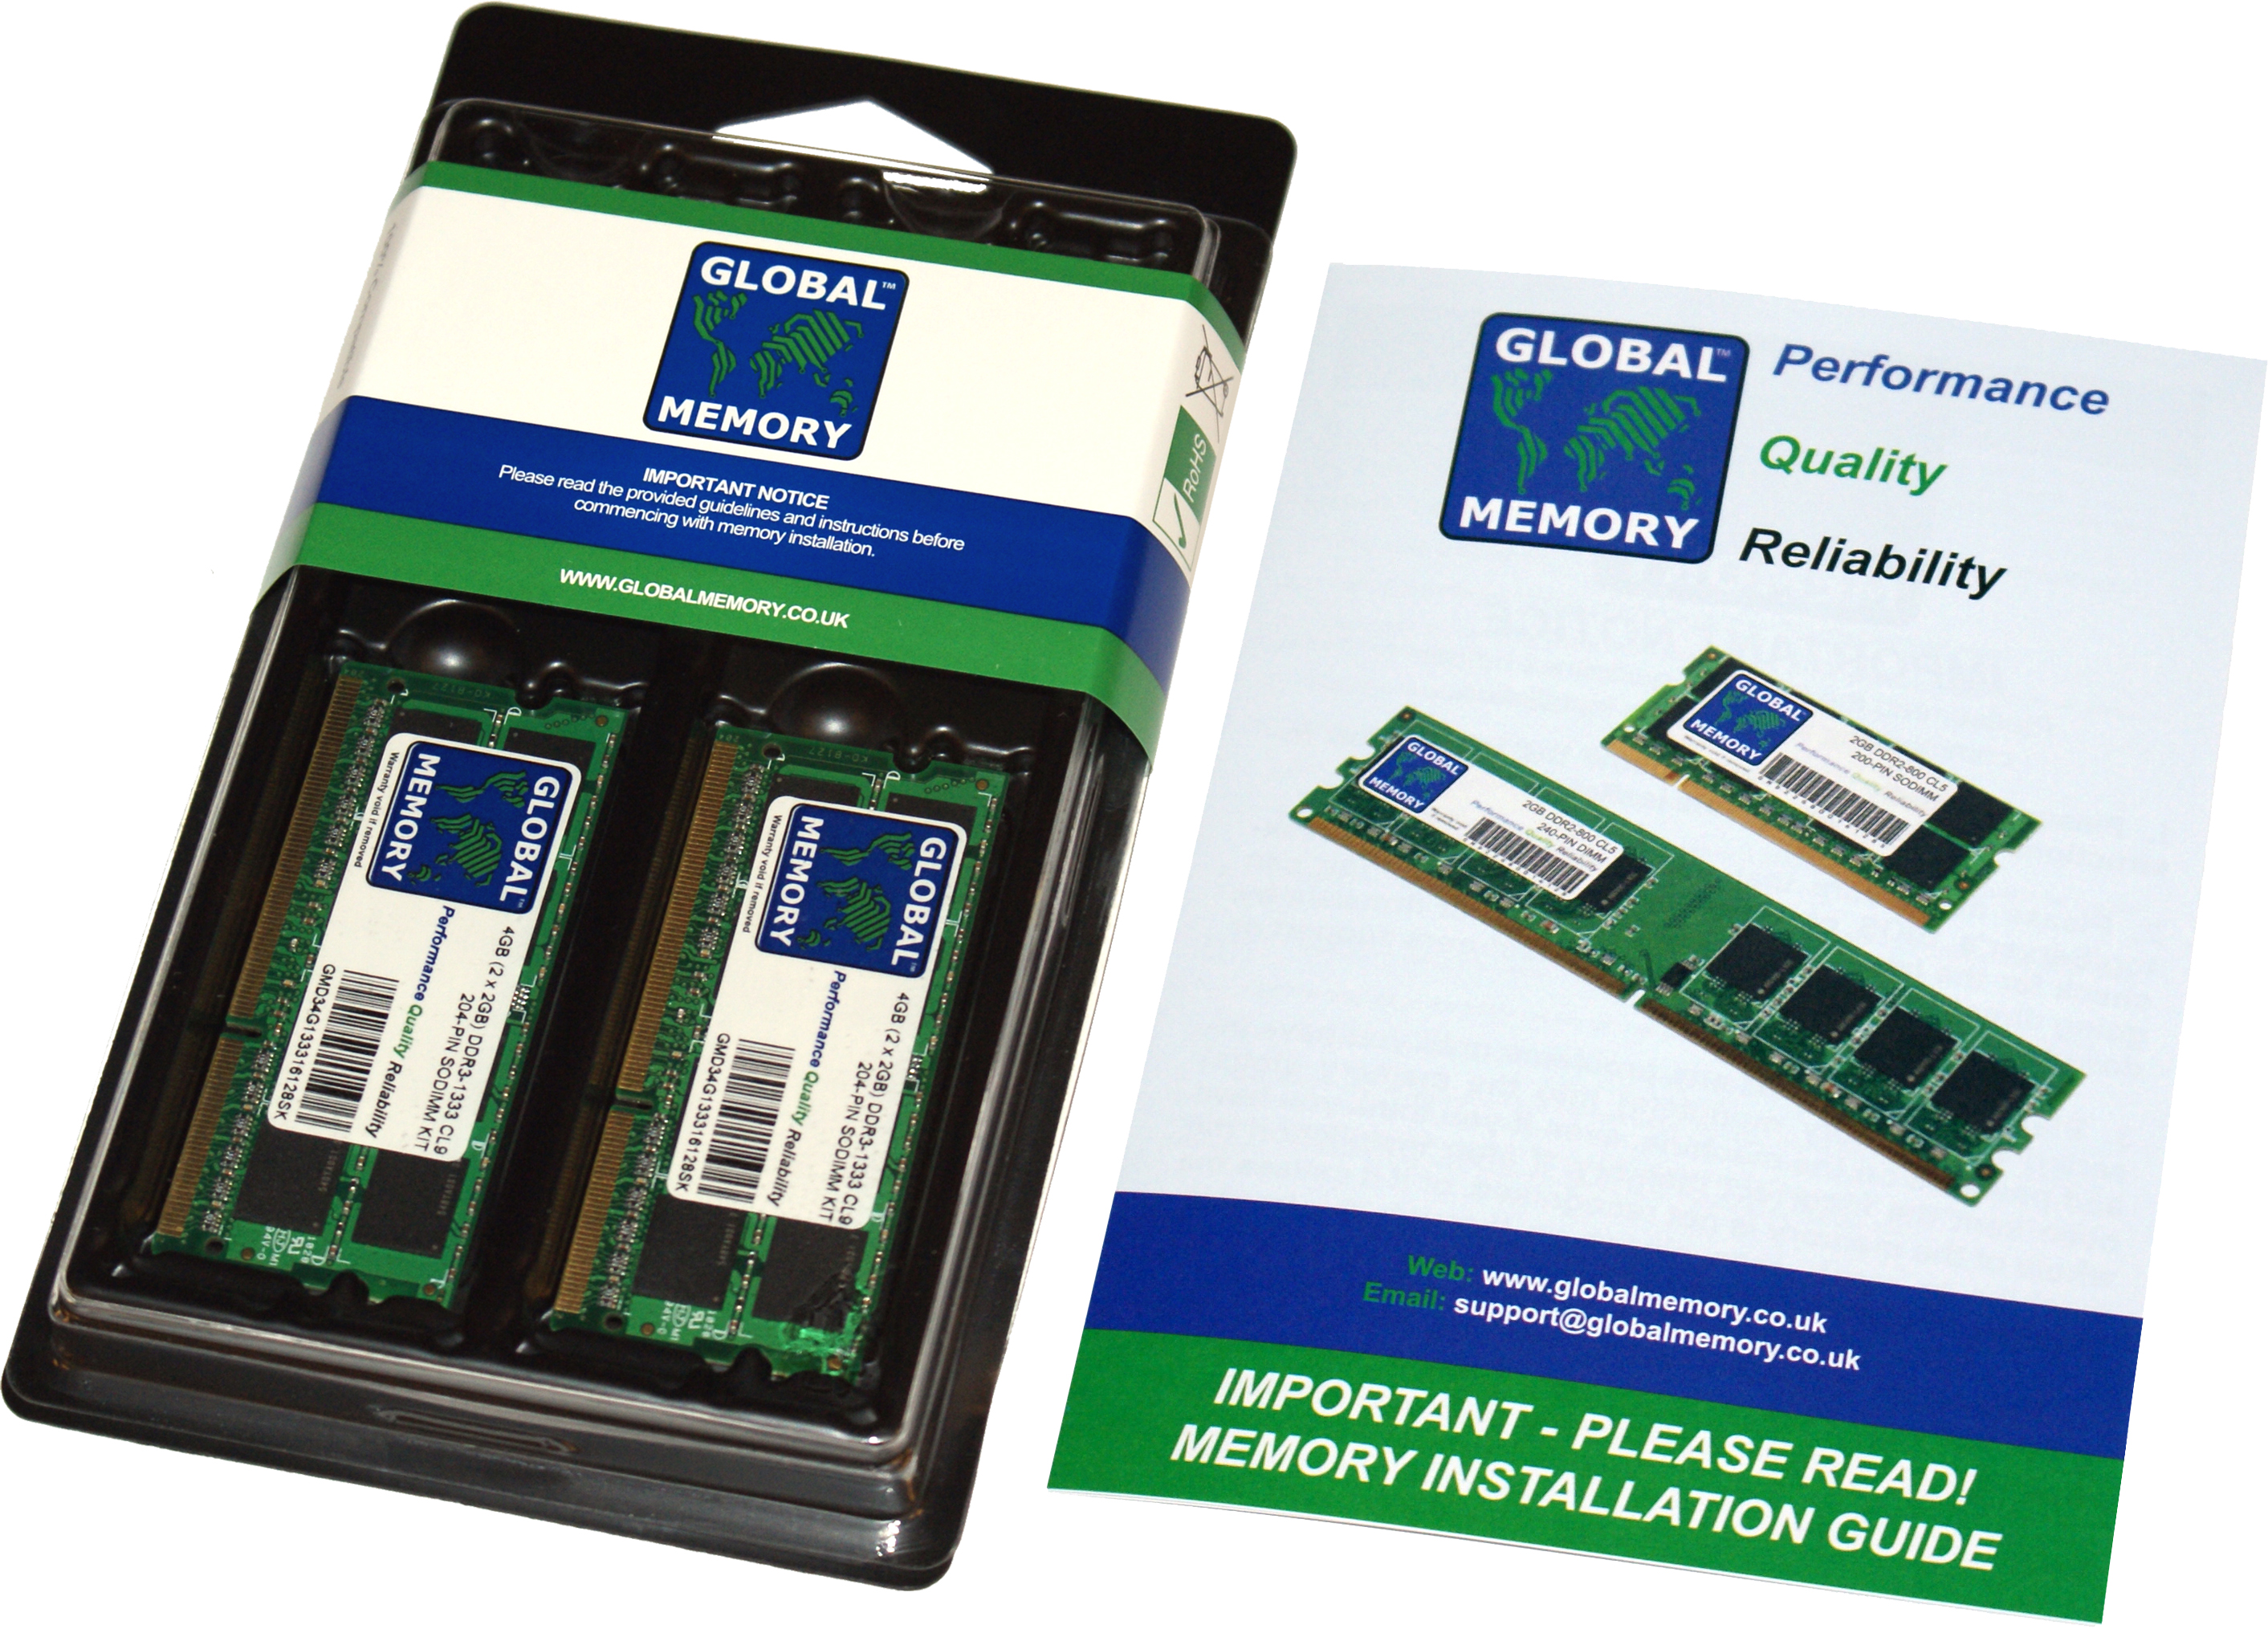 32GB (2 x 16GB) DDR3 1866MHz PC3-14900 204-PIN SODIMM MEMORY RAM KIT FOR DELL LAPTOPS/NOTEBOOKS